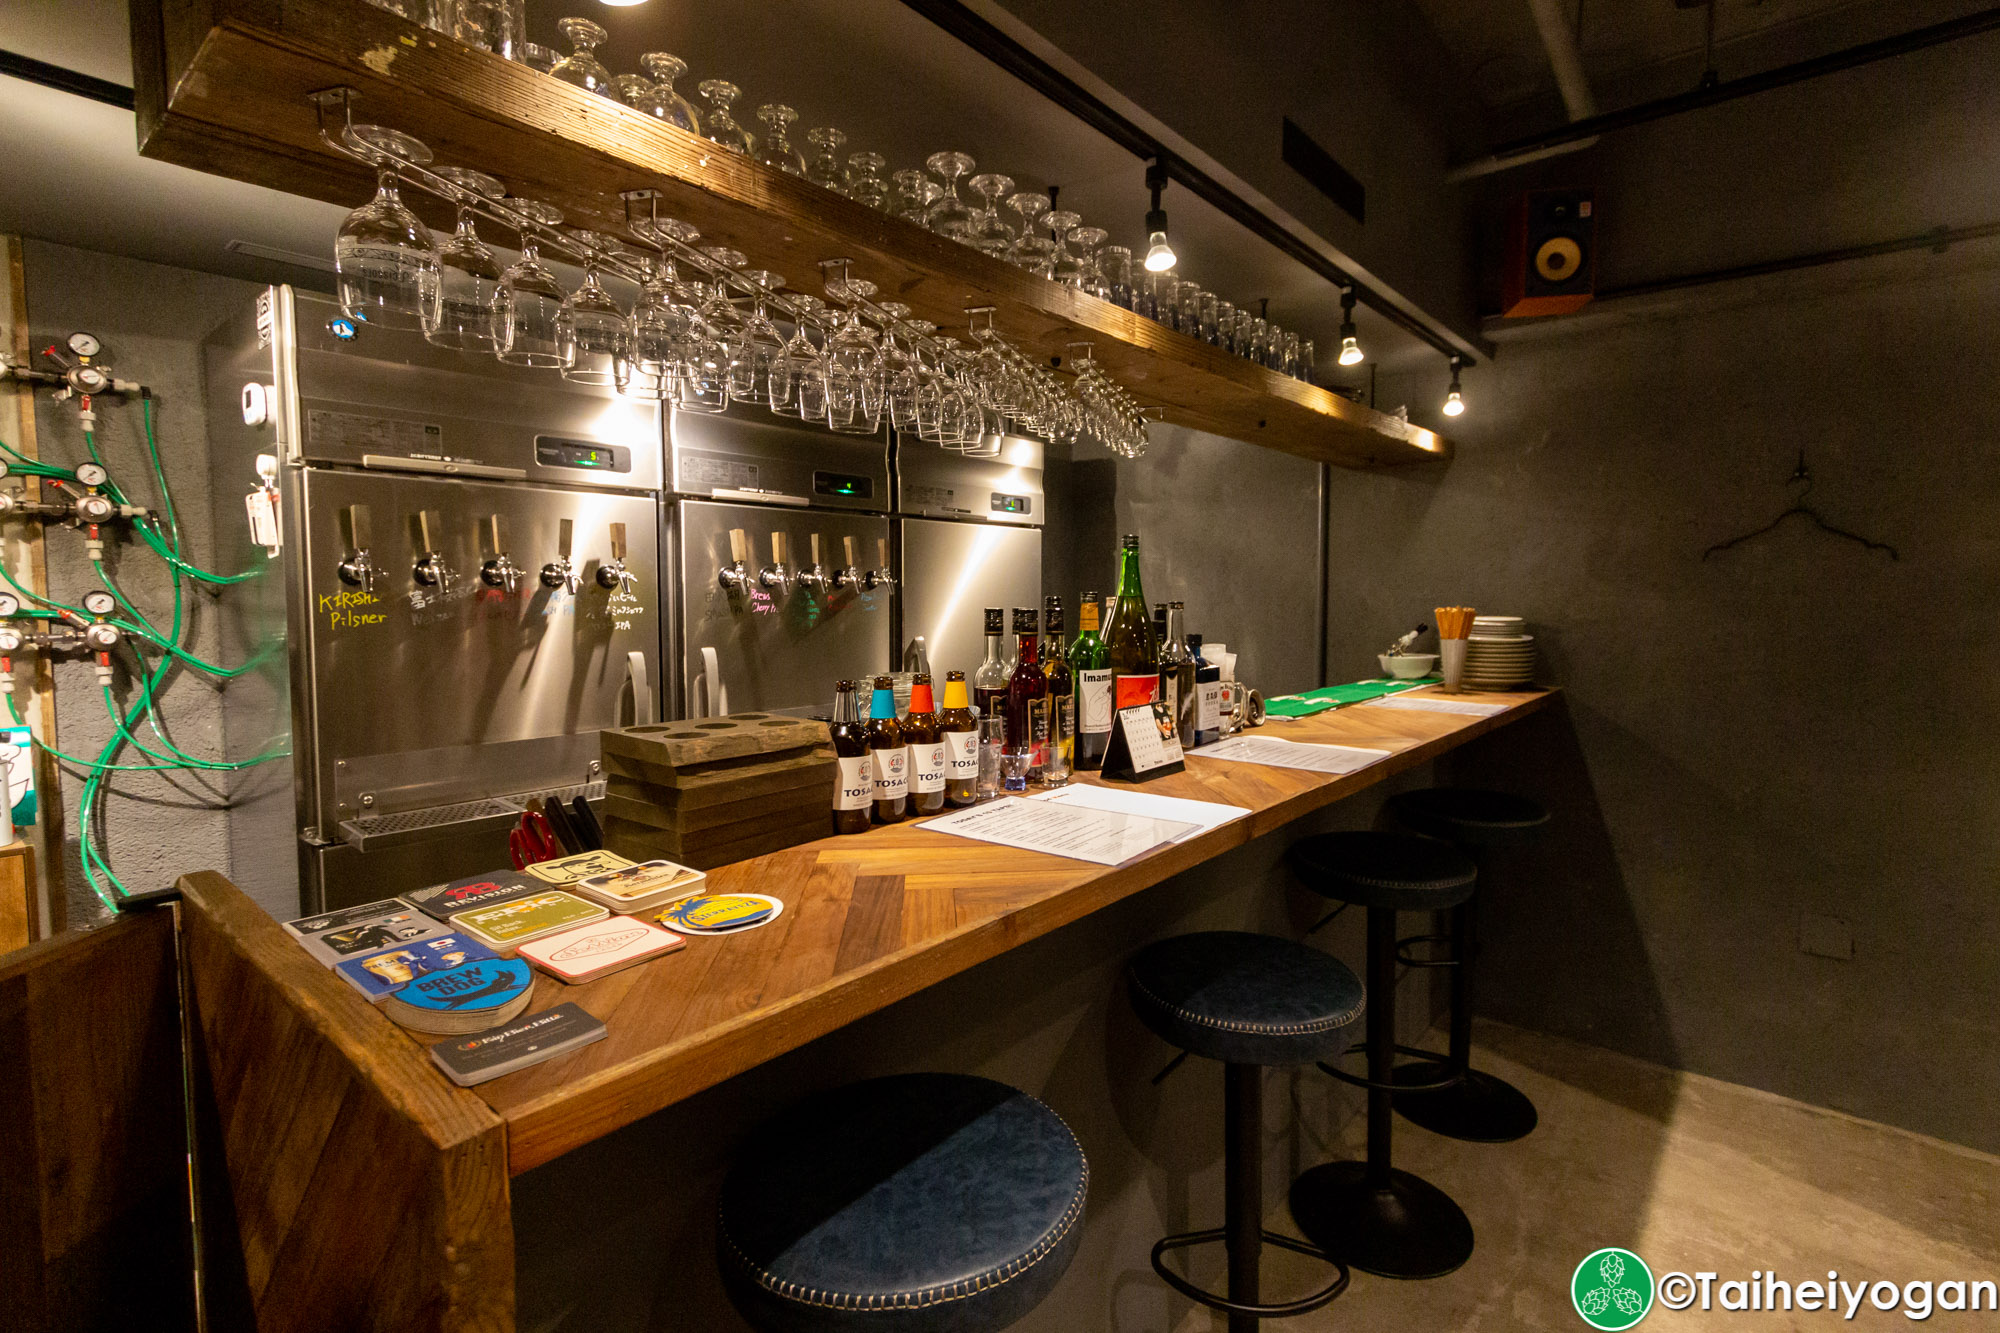 クラフトビールシザーズ池尻大橋・Craft Beer Scissors (Ikejiri Ohashi) - Interior - Bar Counter Seating